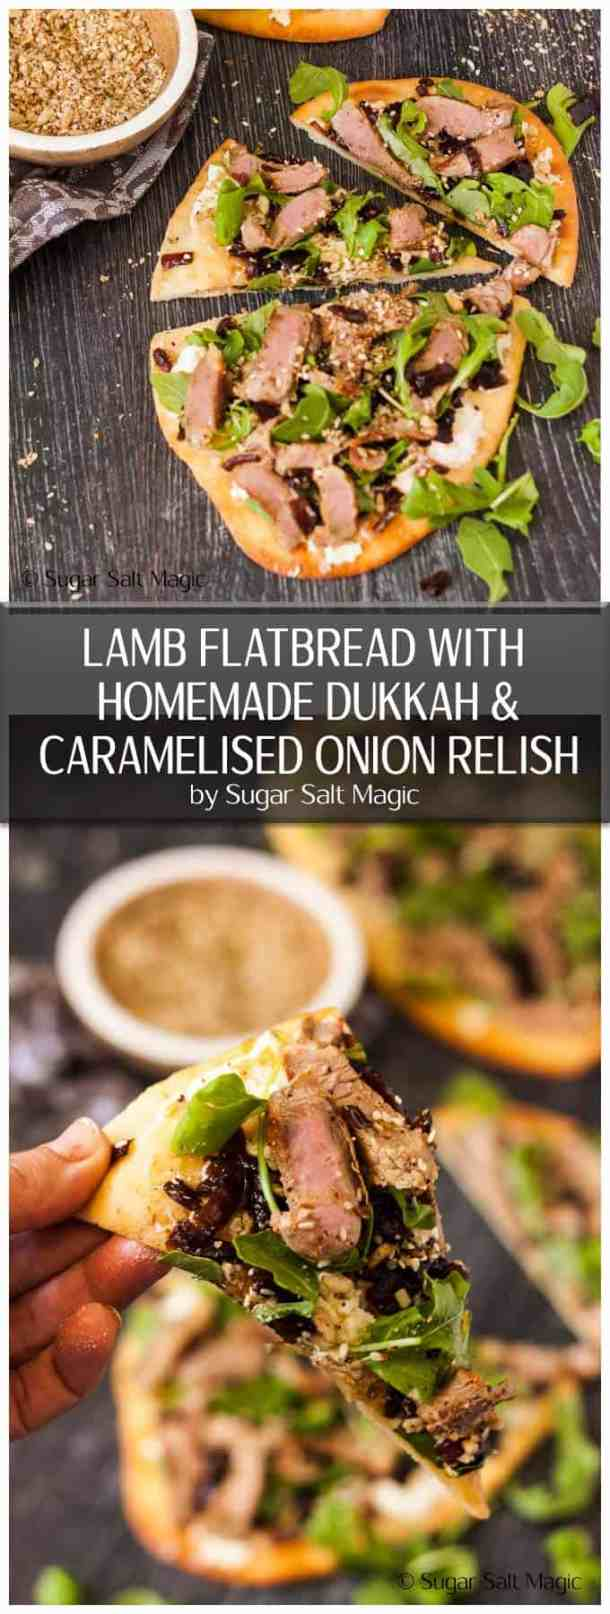 This Lamb Flatbread loaded with Caramelised Onion Relish, Homemade Dukkah, feta and rocket makes an easy & amazing lunch or dinner. #lambflatbread #onionrelish